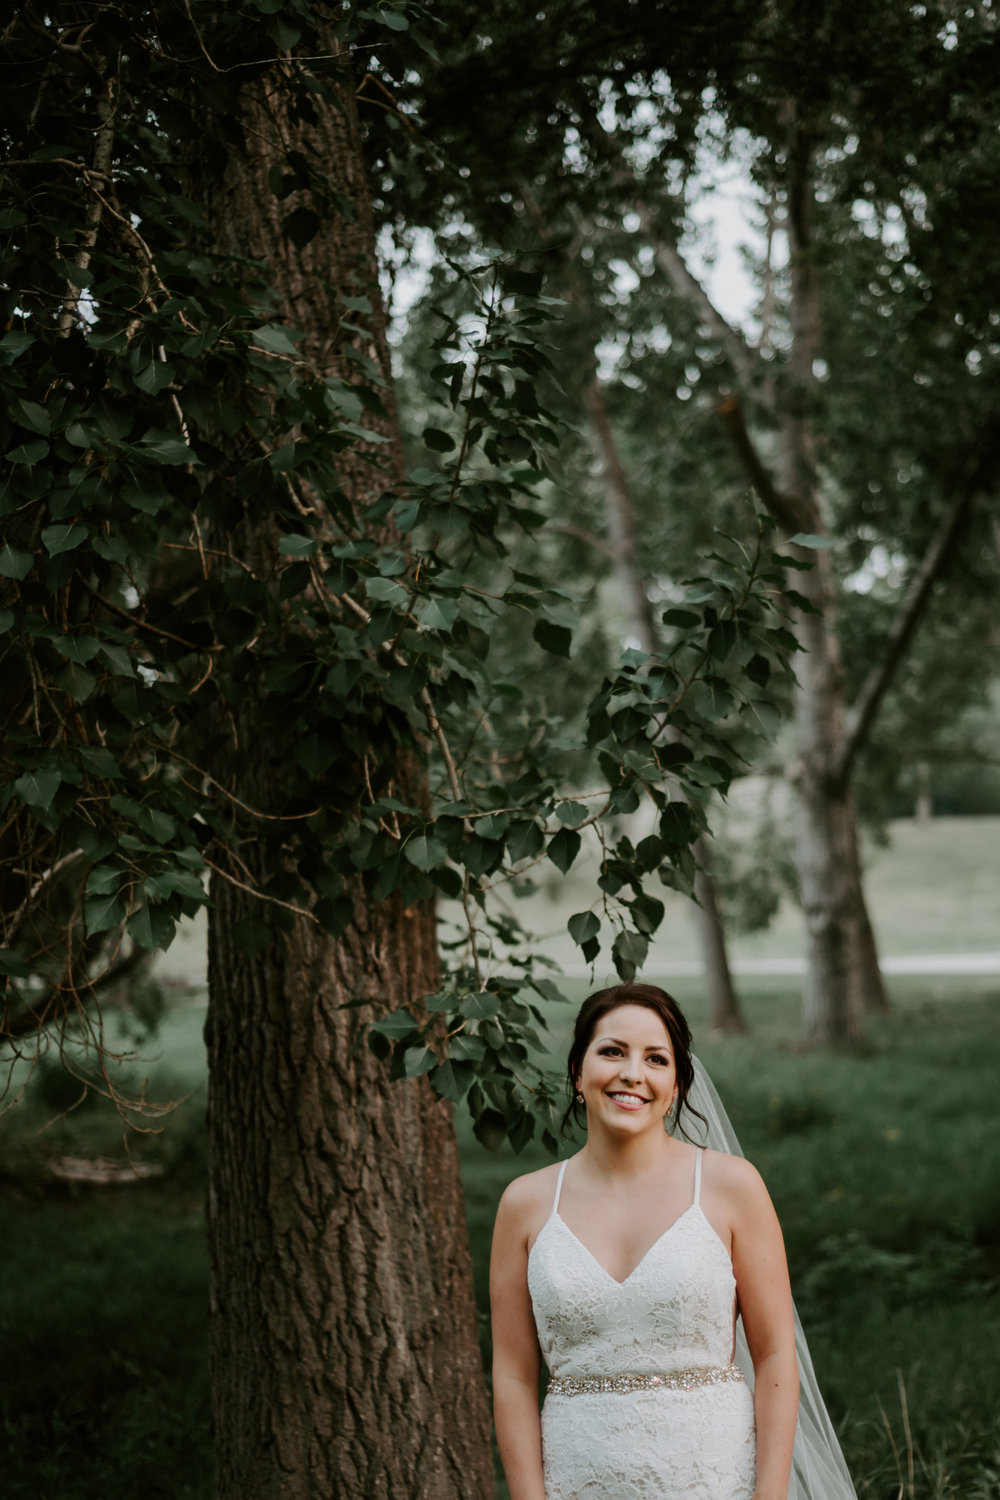 Calgary Wedding Photographer - 57 of 84.jpg